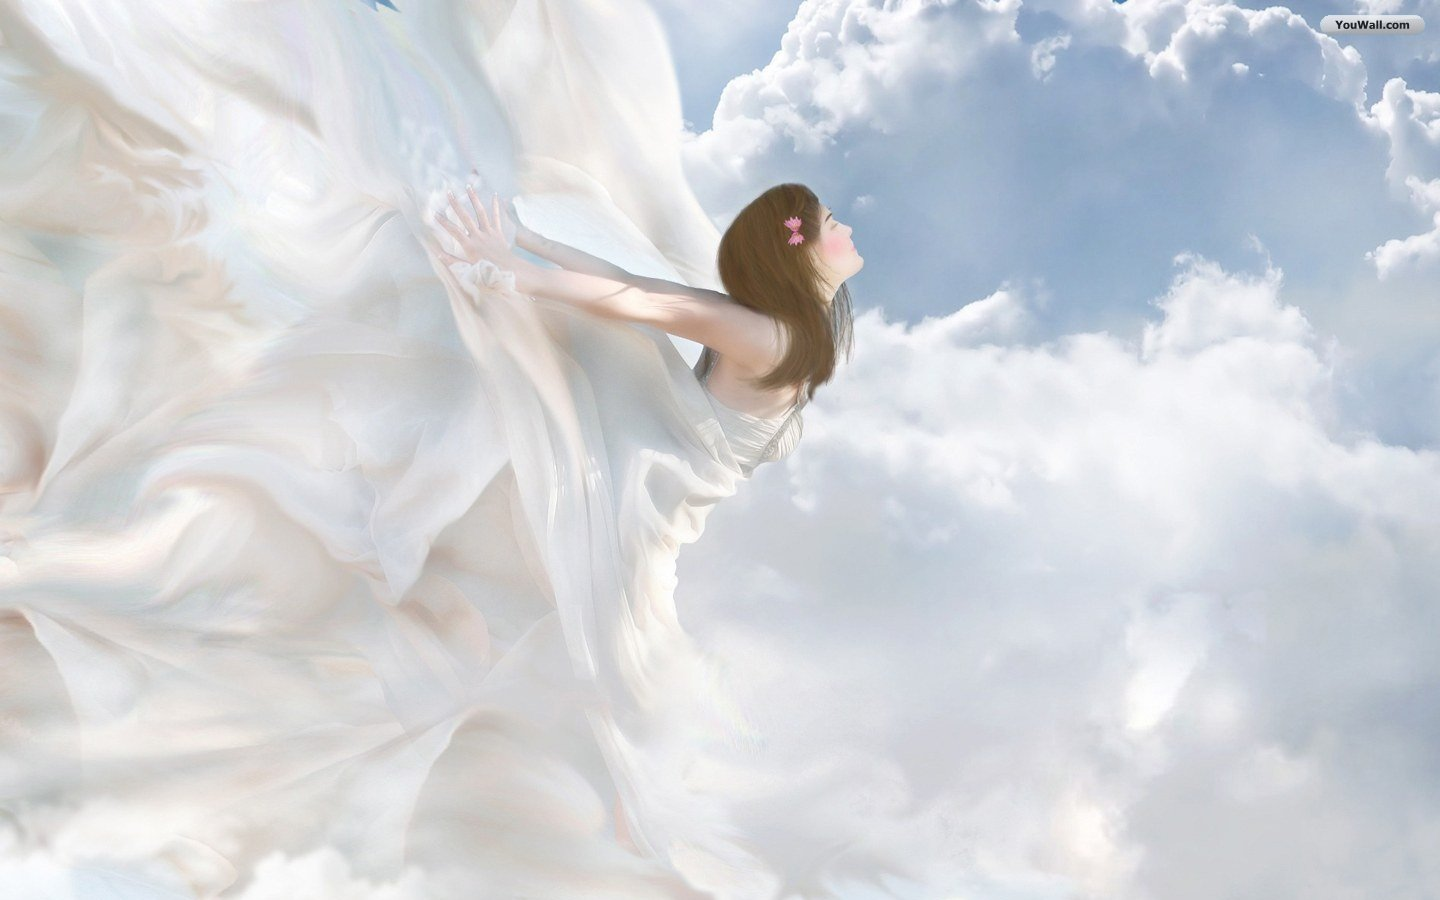 YouWall   Flying Angel Wallpaper   wallpaperwallpapersfree wallpaper 1440x900